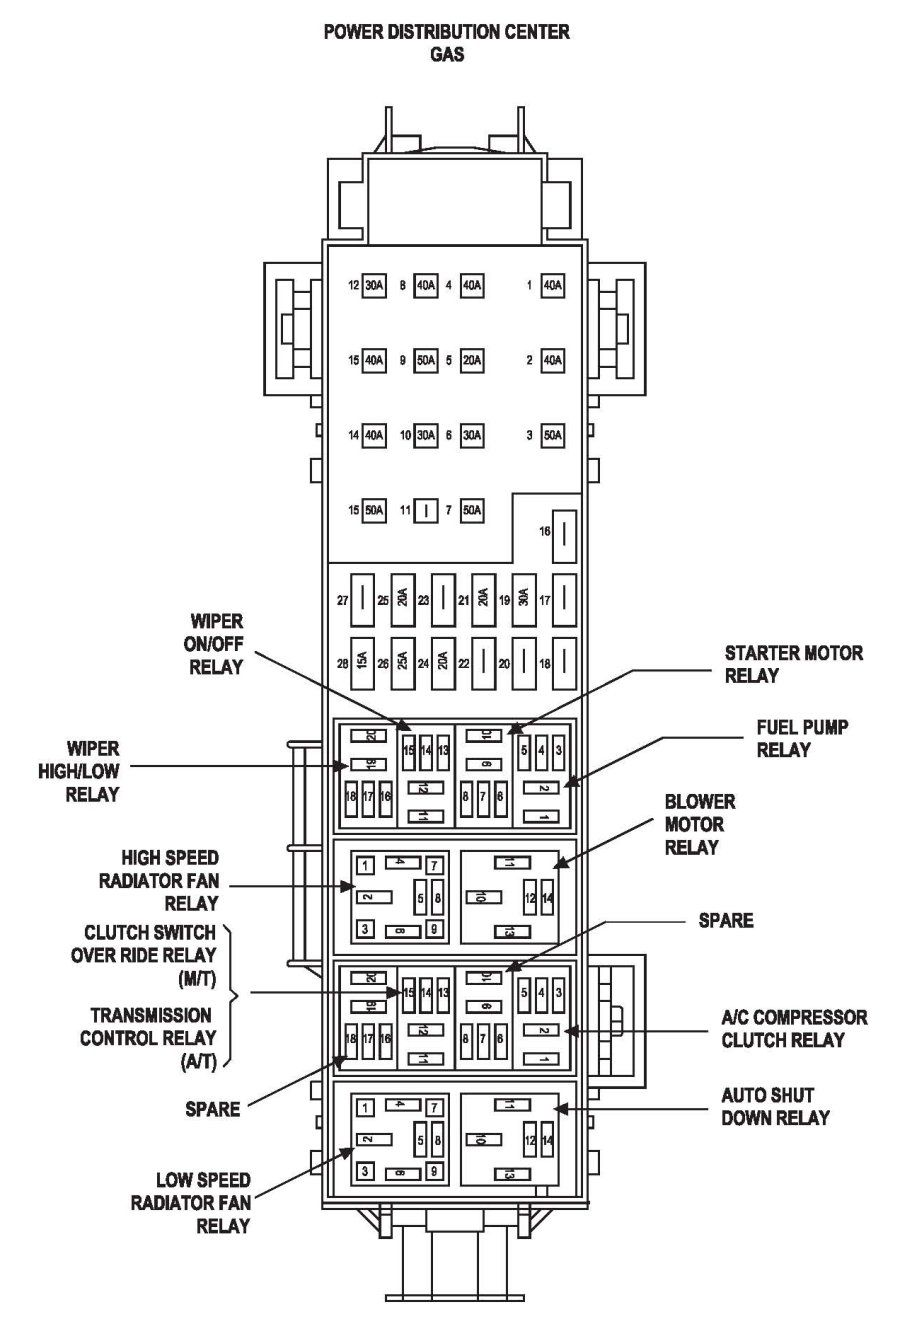 b3536c3739783eb19f827744cc42c3c4 jeep liberty fuse box diagram image details jeep liberty 2010 jeep grand cherokee fuse diagram at soozxer.org